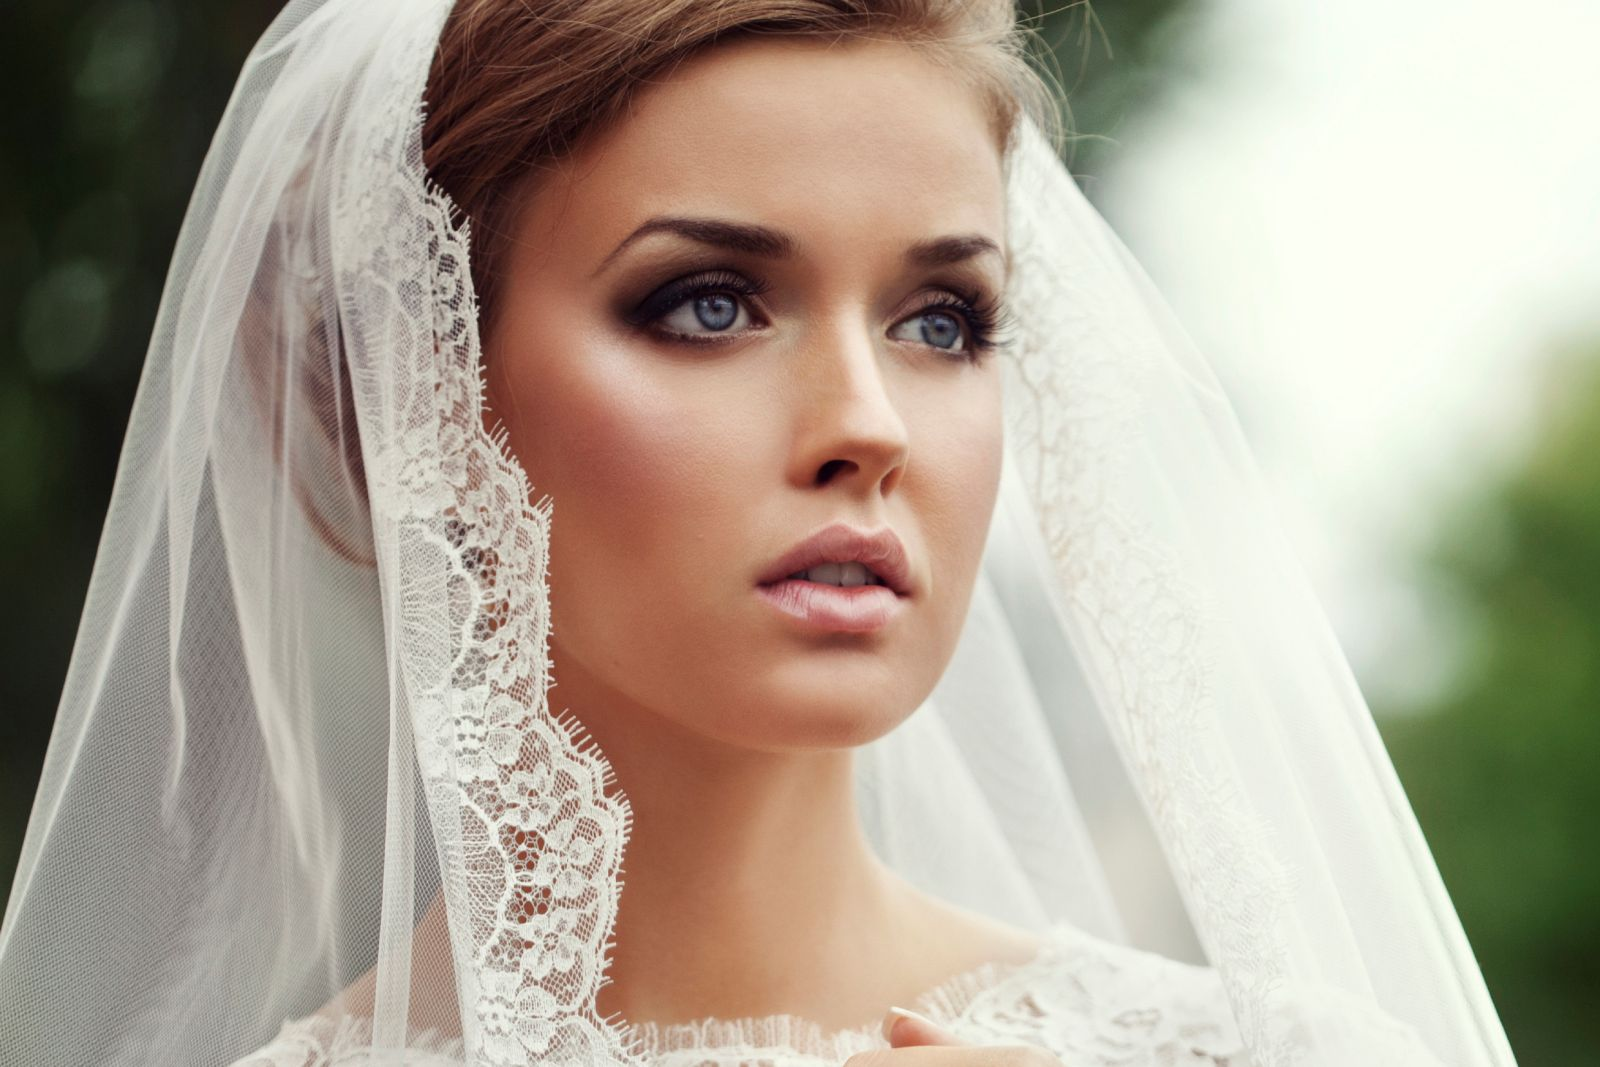 Wedding-makeup-ideas05